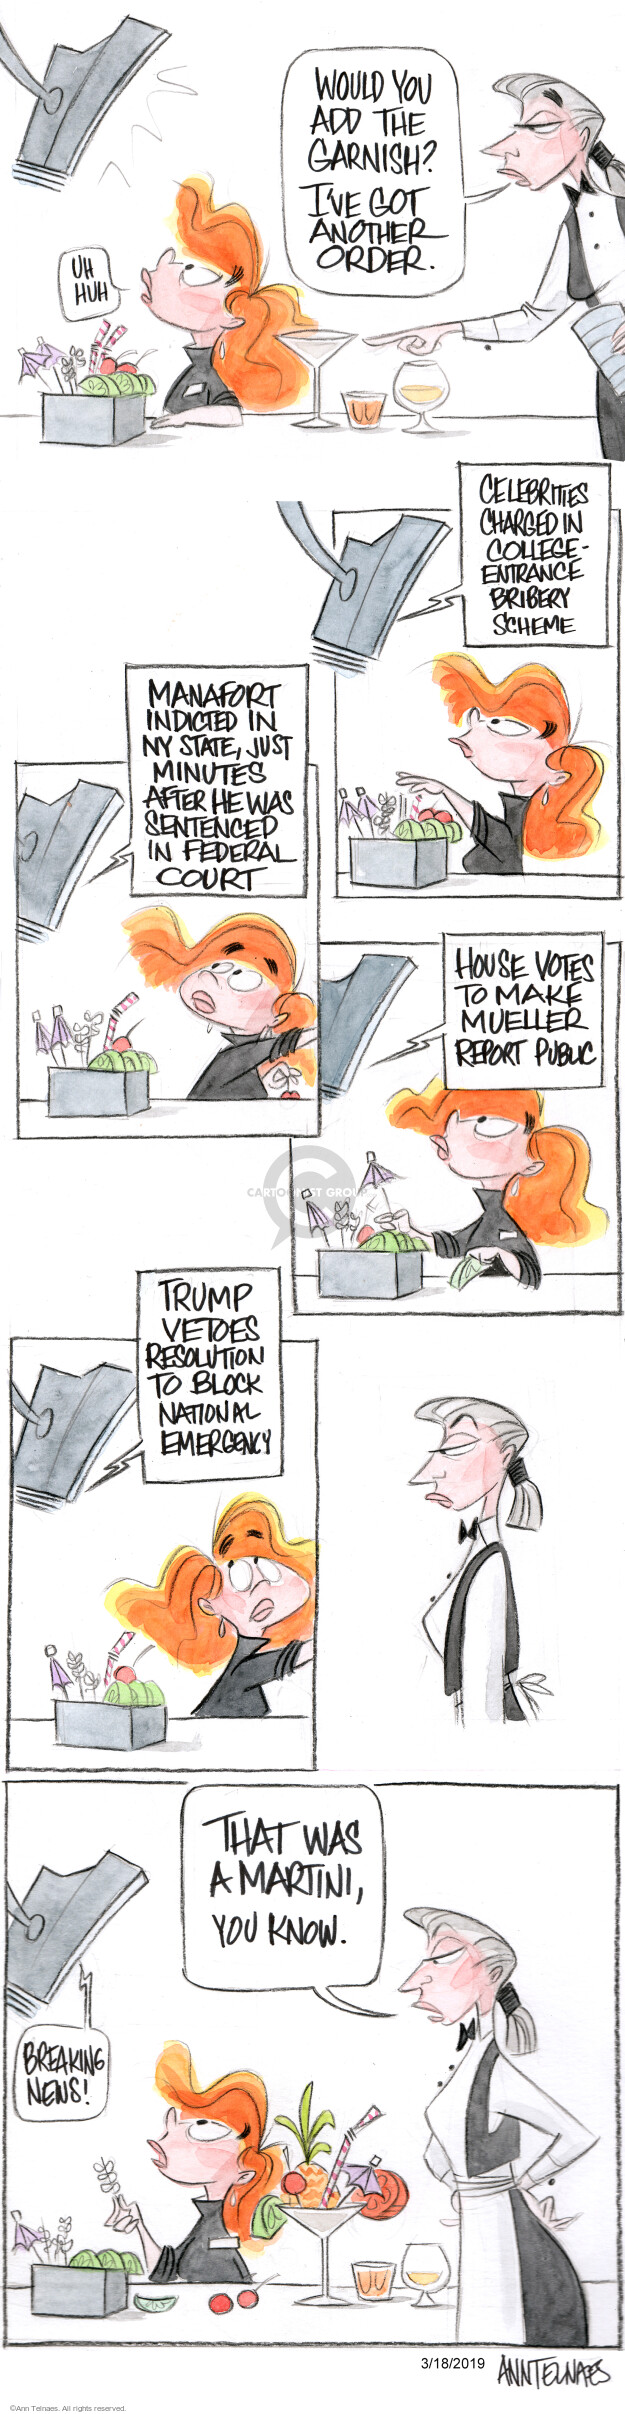 Ann Telnaes  Ann Telnaes' Editorial Cartoons 2019-03-18 bribery